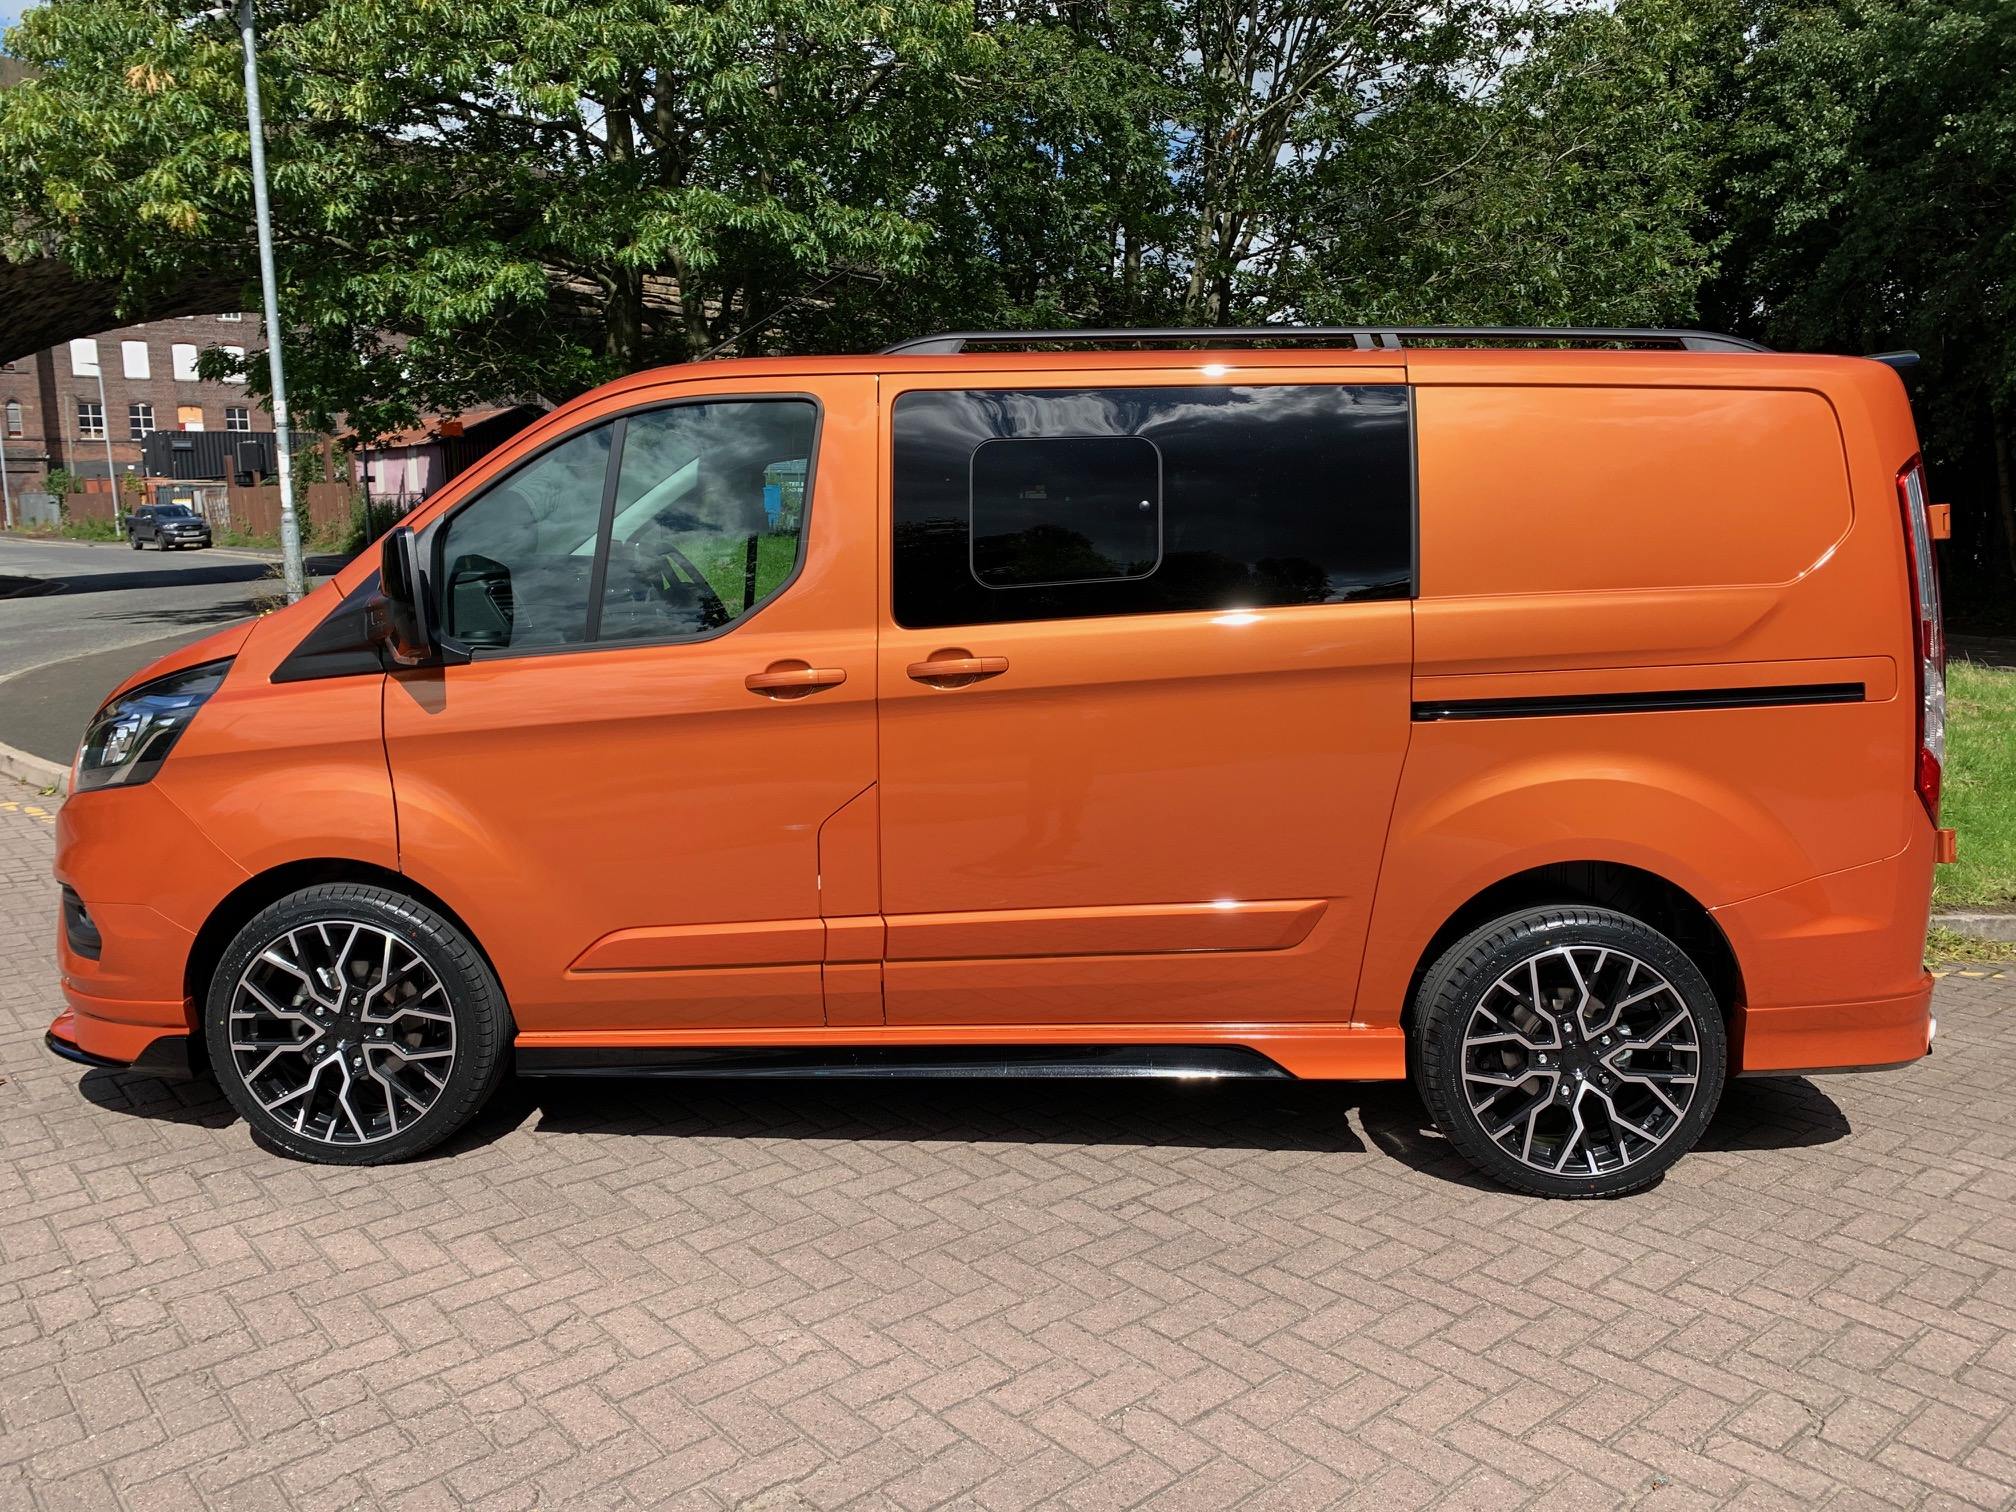 IMG_5264.jpg - Inferno X 320 L1 Double Cab In Van 2.0tdci 185 Limited Auto